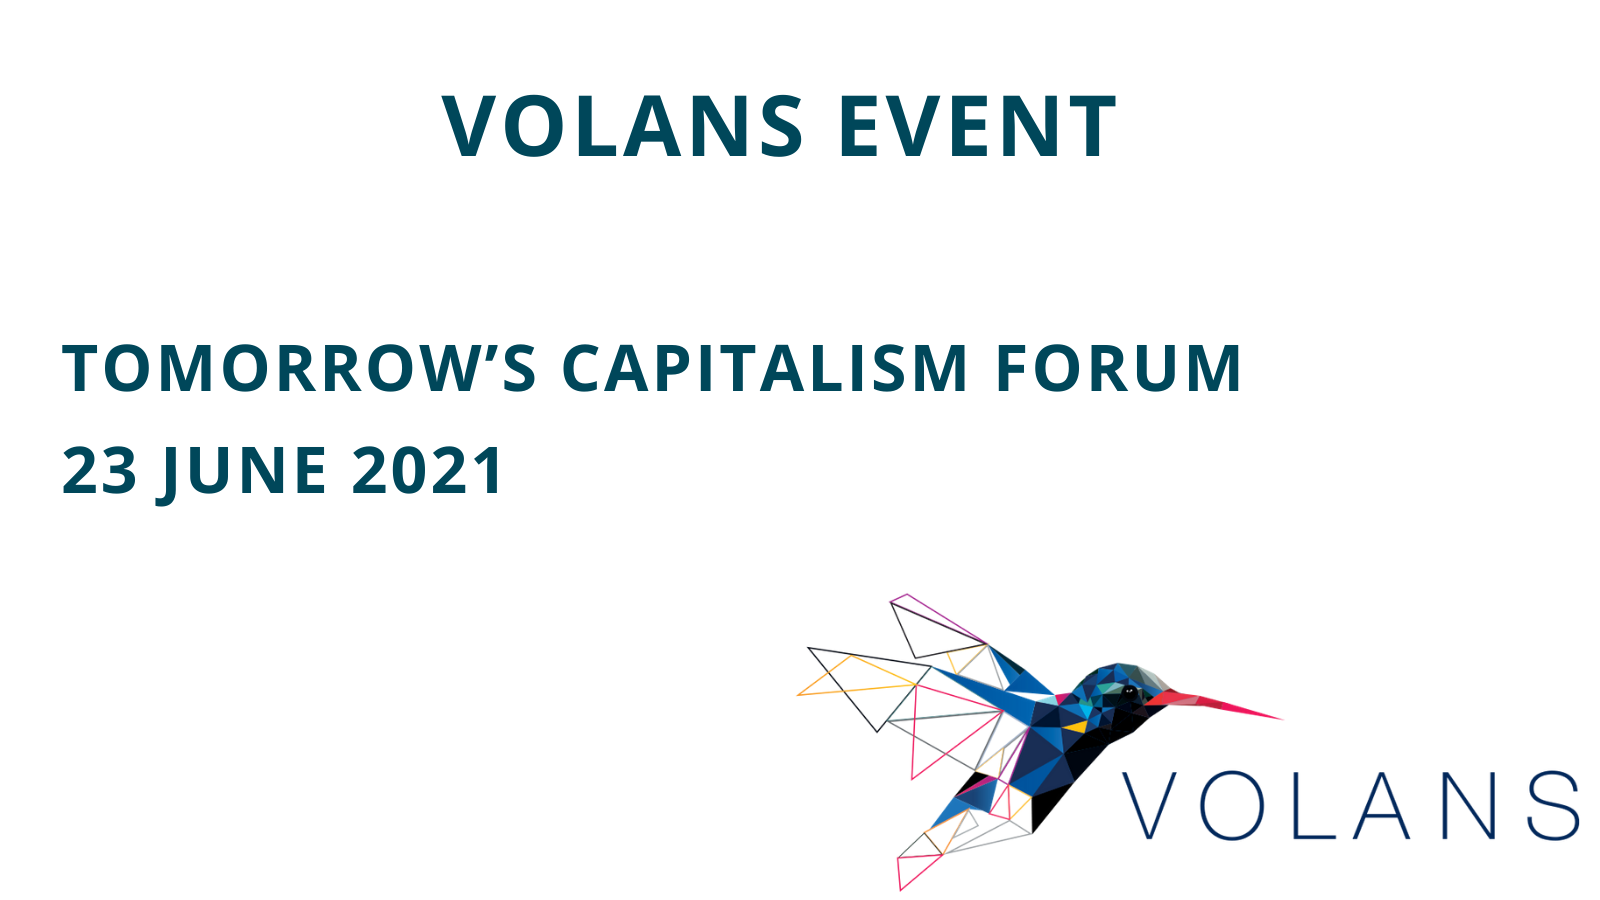 Tomorrow's Capitalism Forum 2021 - Preview Image